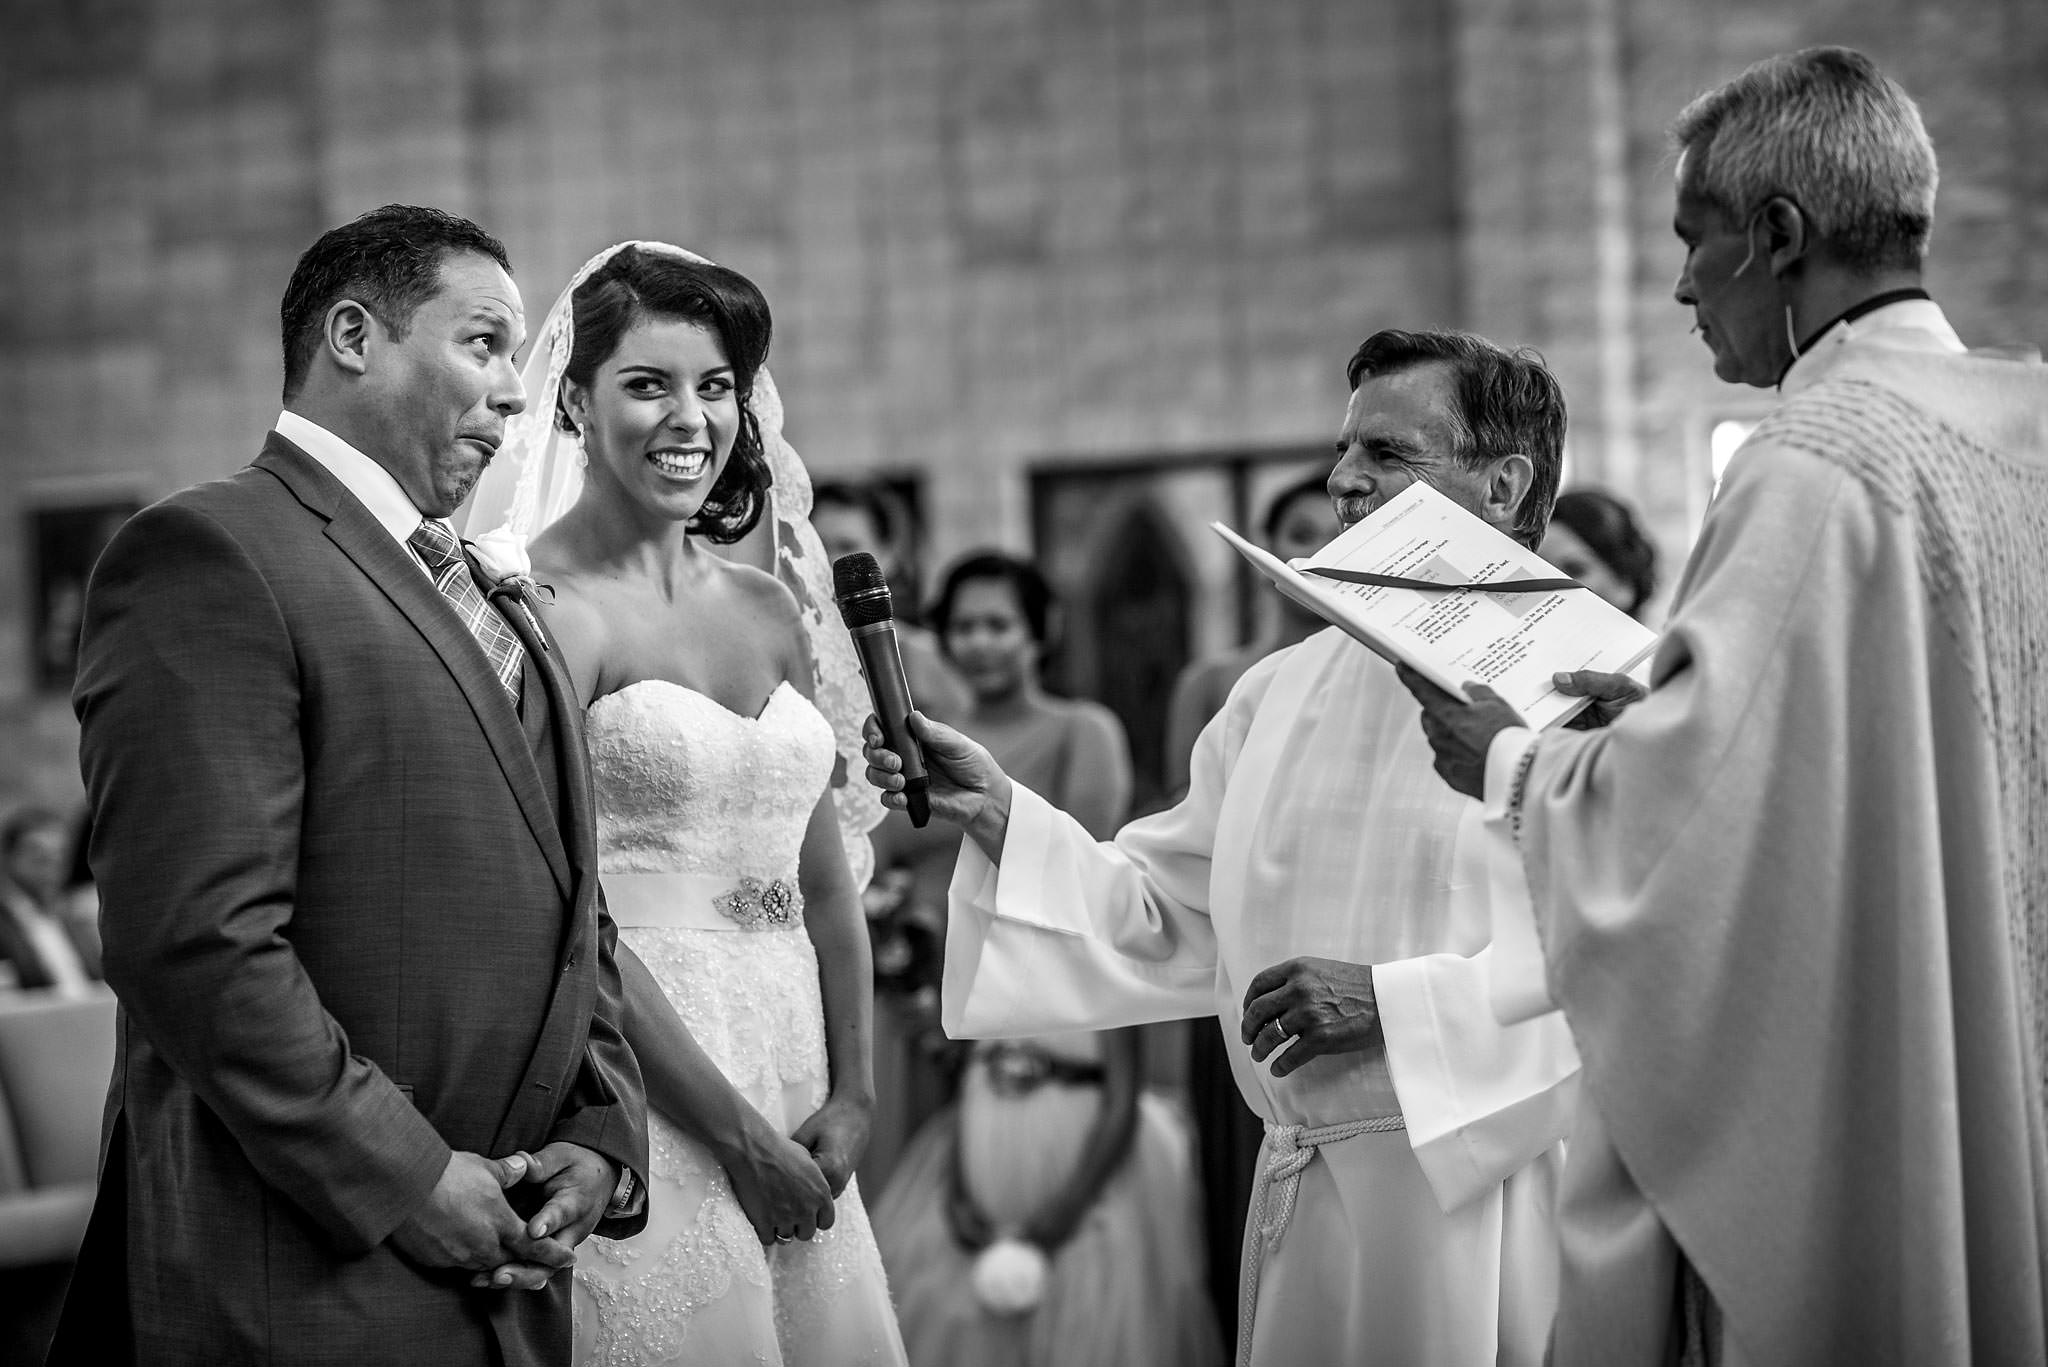 a bride laughing at a groom during their wedding ceremony by Edmonton wedding photographers